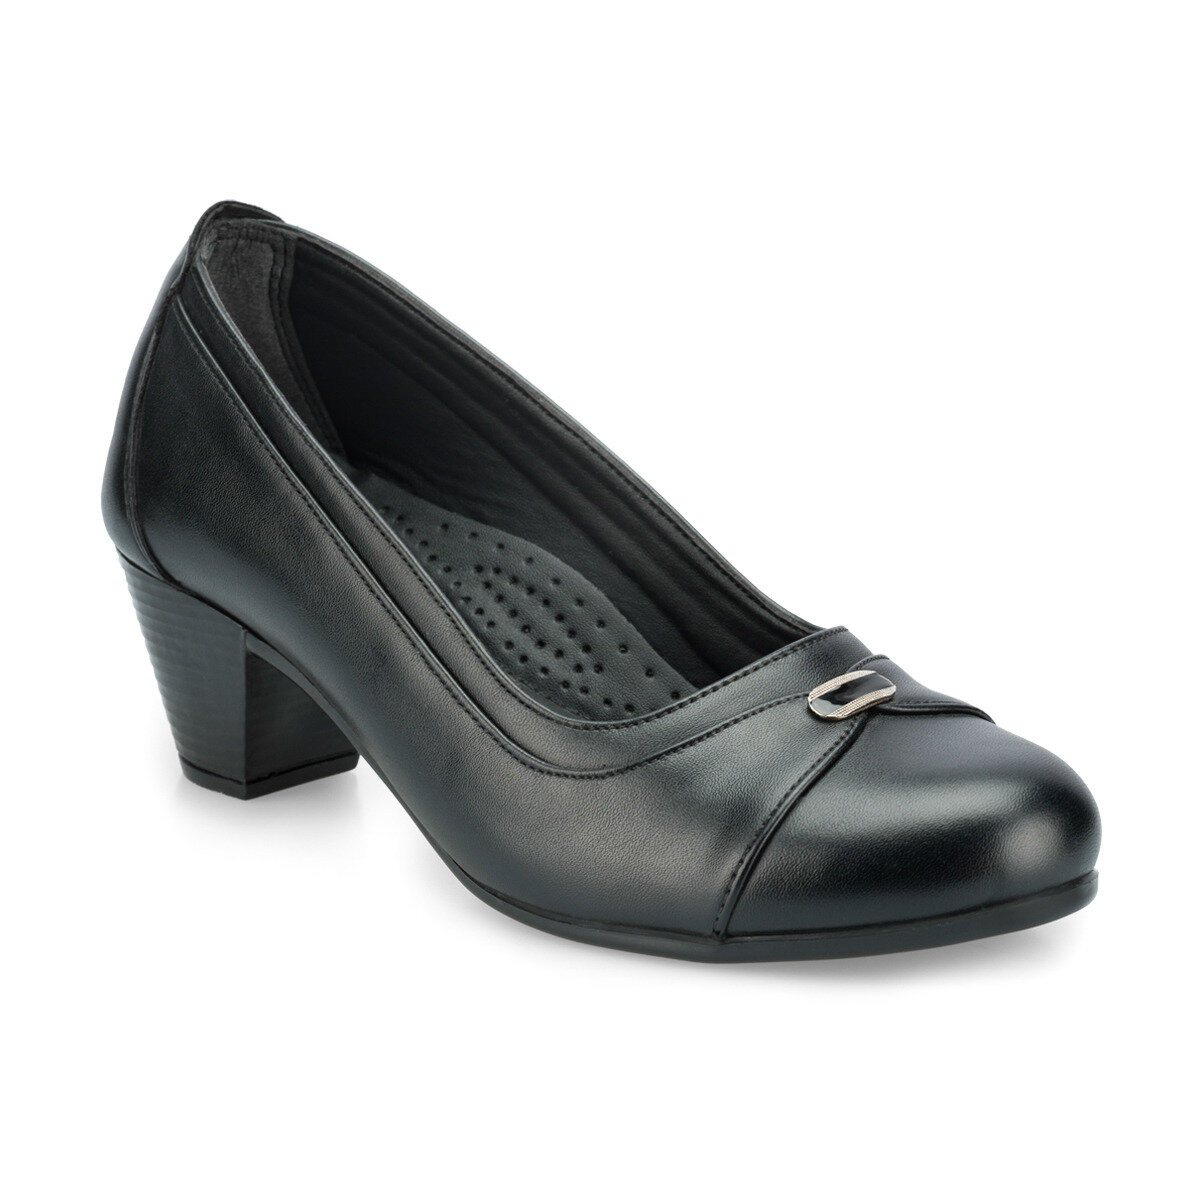 FLO 161062.Z Black Women Shoes Polaris